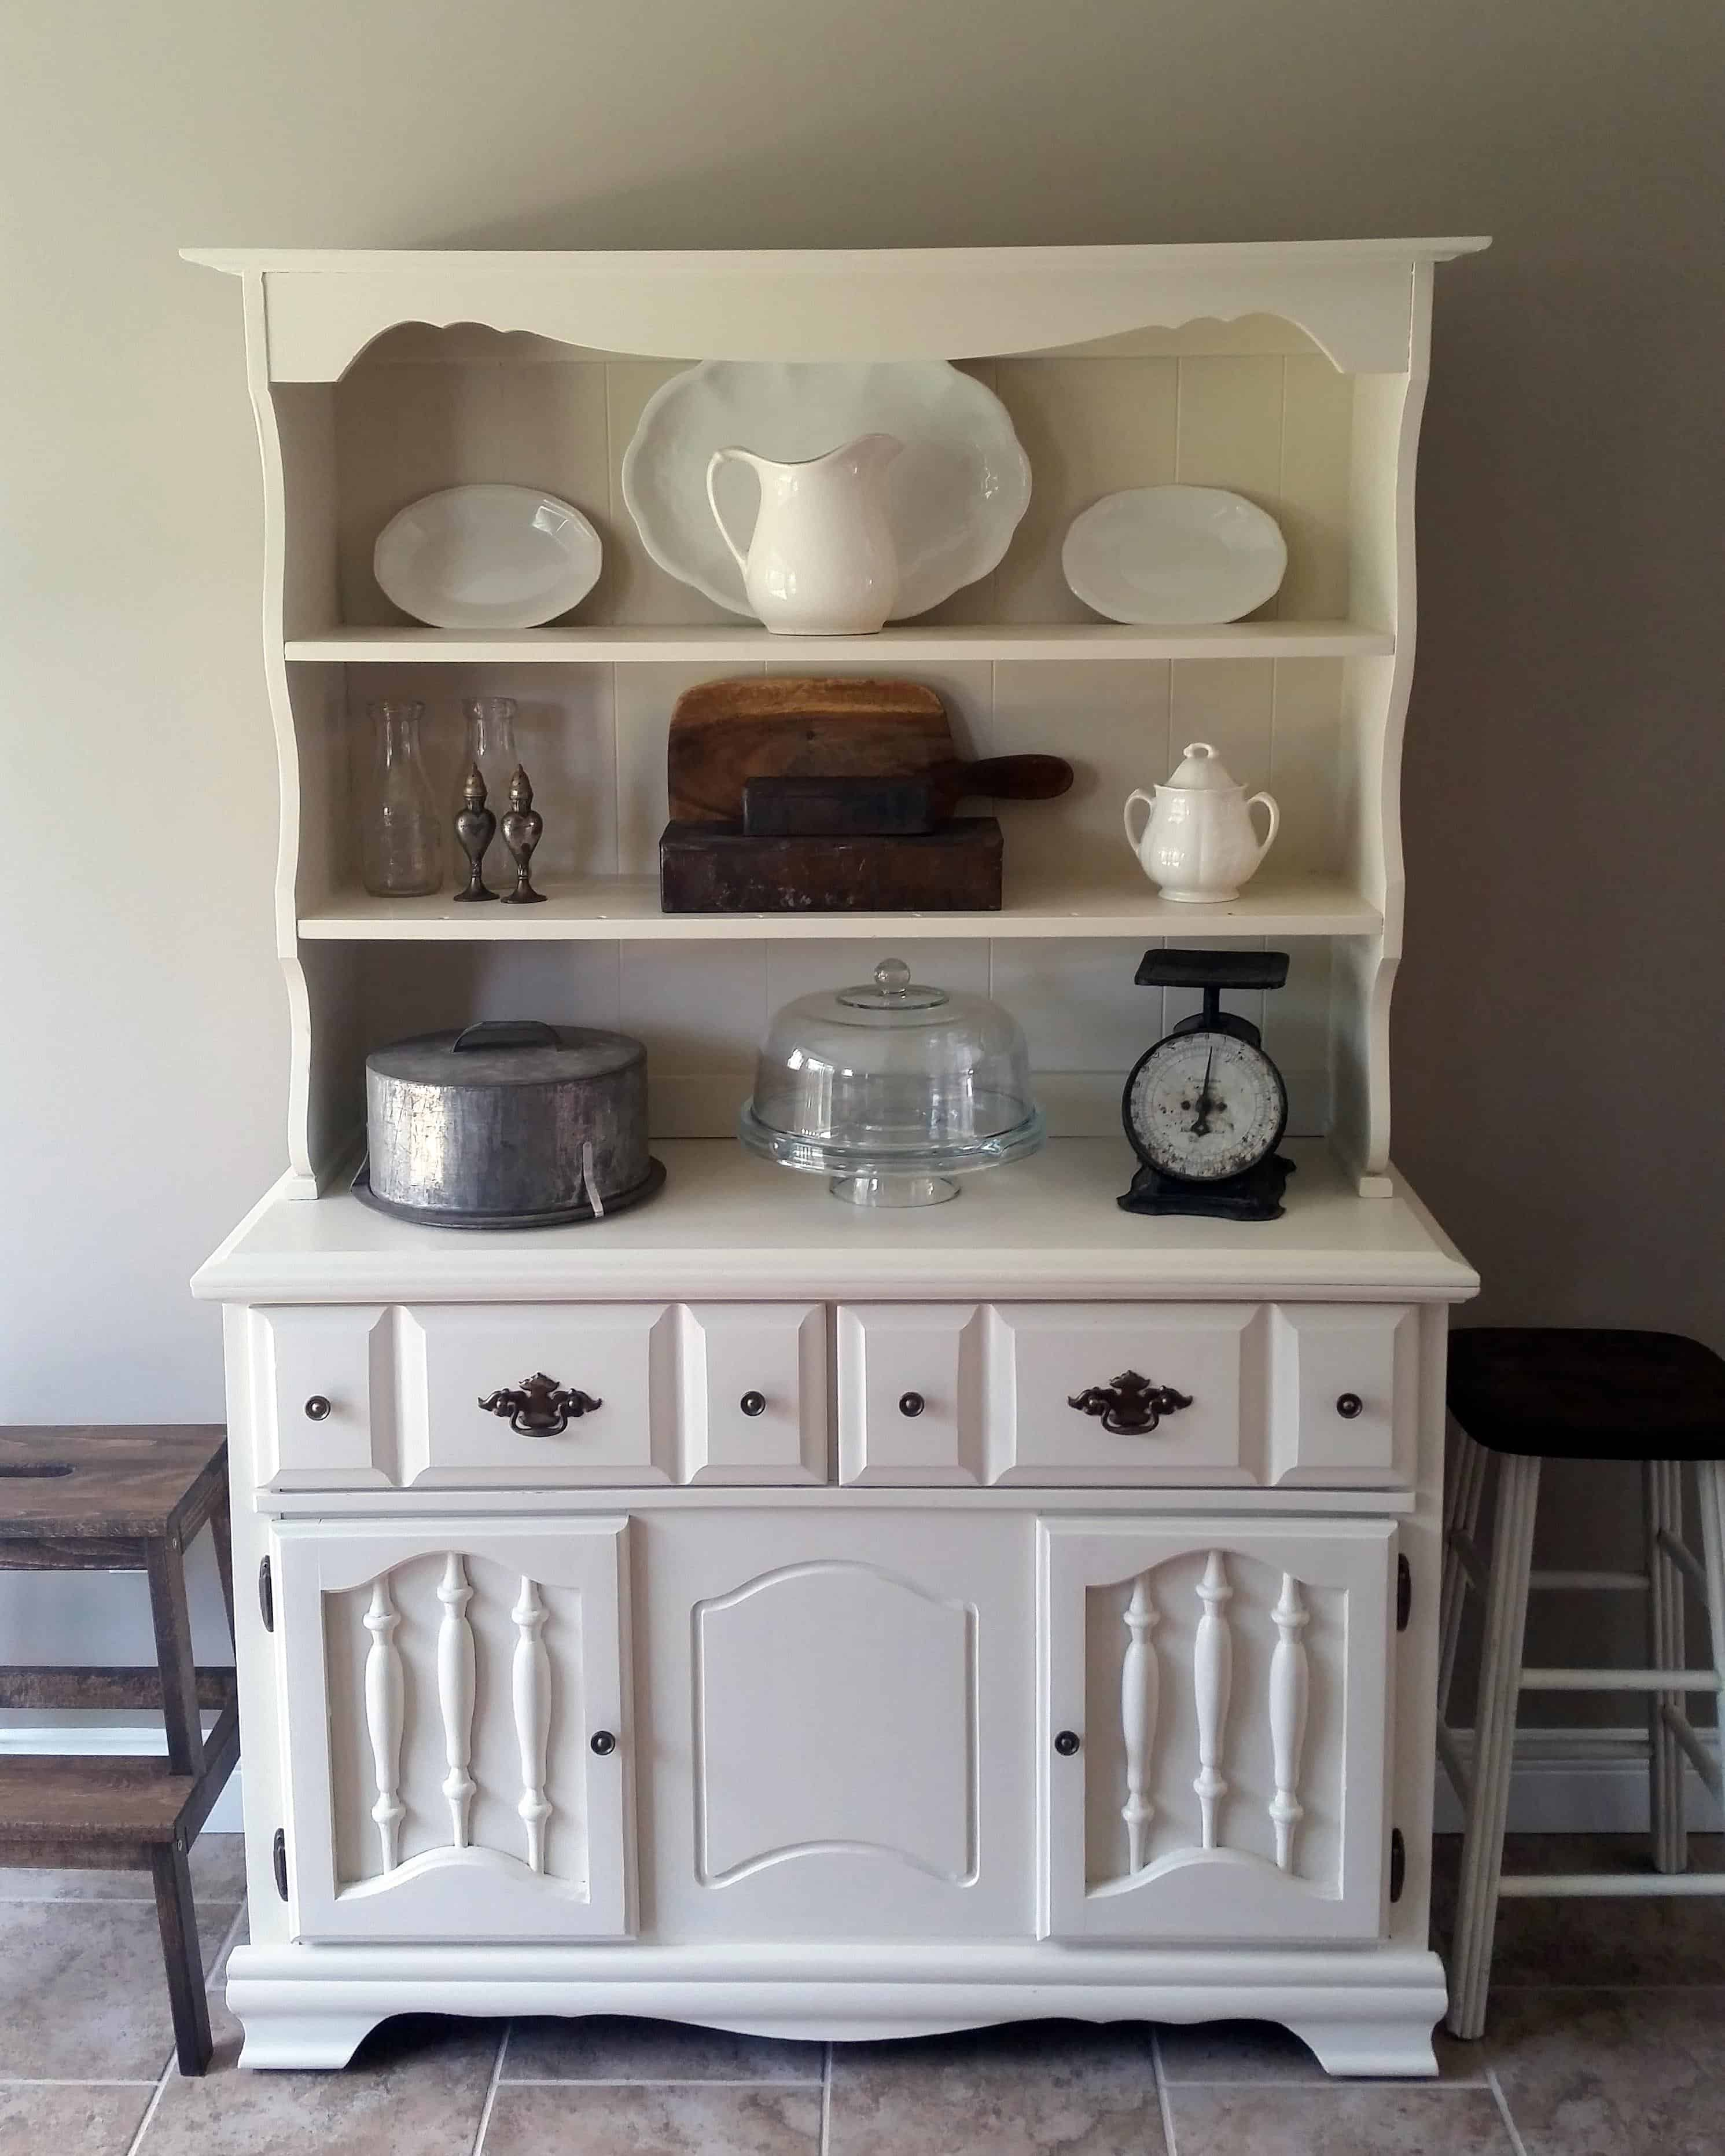 images kitchen decor hip hutch a home design vintage french essentials ideas country